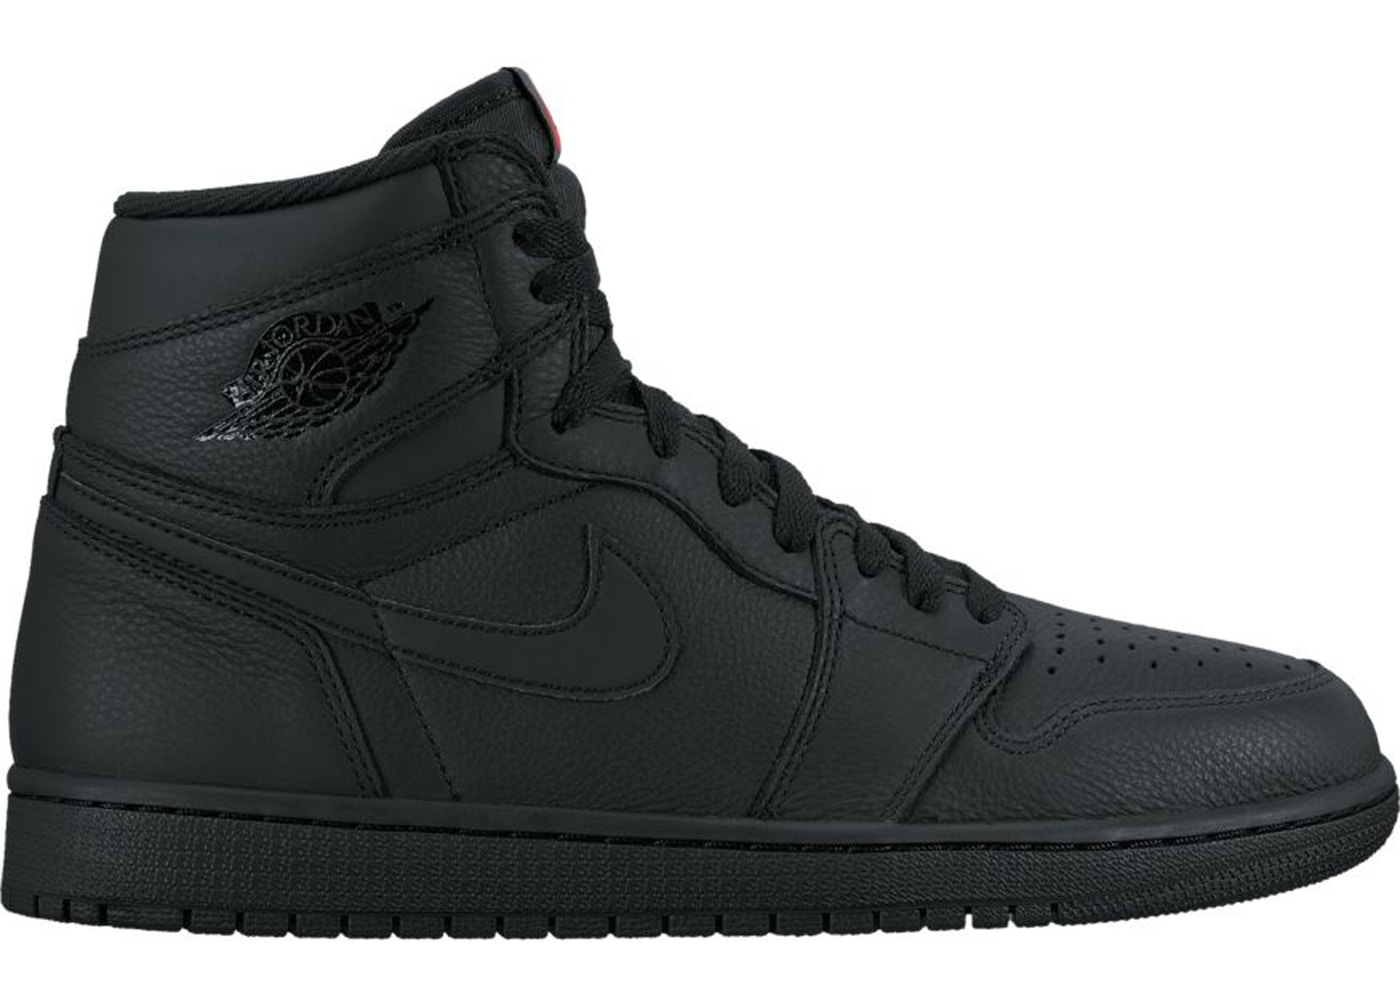 new concept 6d42a 22b5d Jordan 1 Retro High OG Black - 555088-022